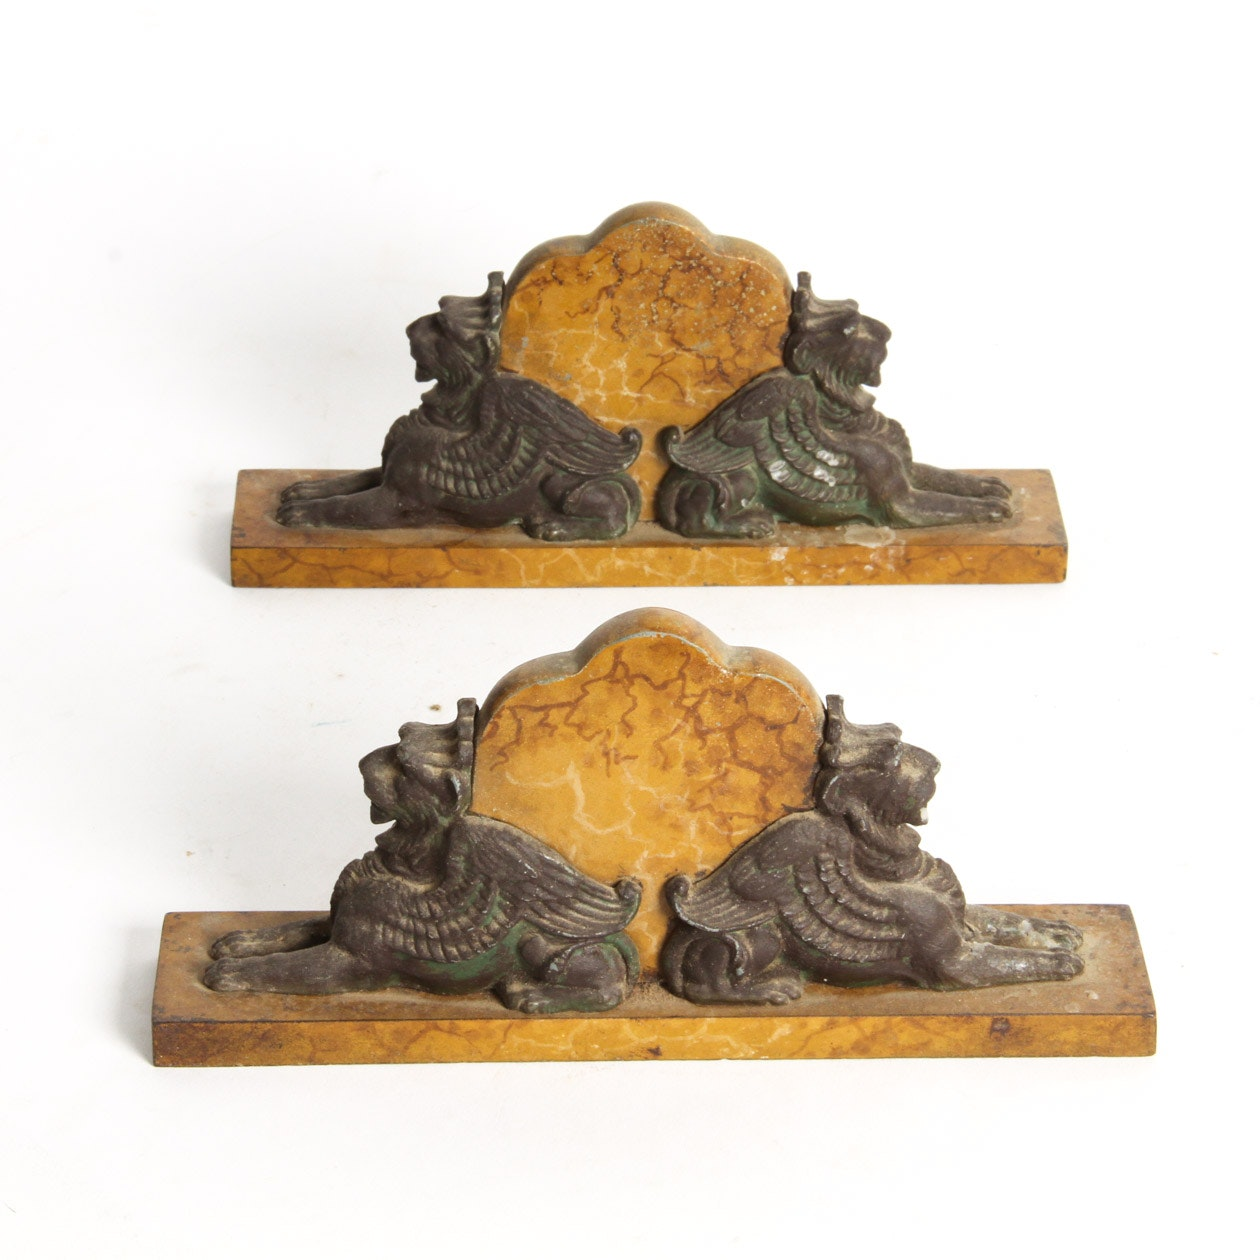 Pair of Vintage Cast Iron and Stone Griffin Door Stoppers ...  sc 1 st  EBTH.com & Pair of Vintage Cast Iron and Stone Griffin Door Stoppers : EBTH